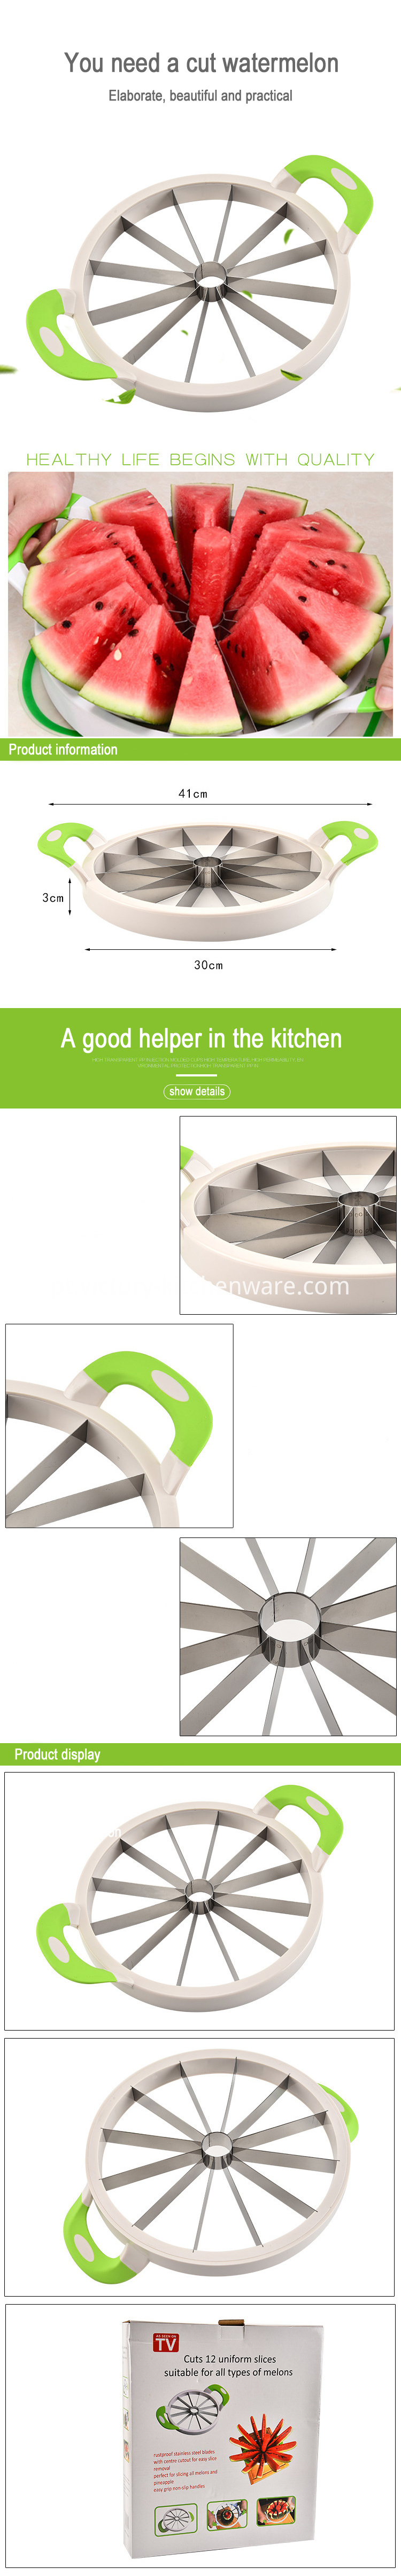 waternelon slicer